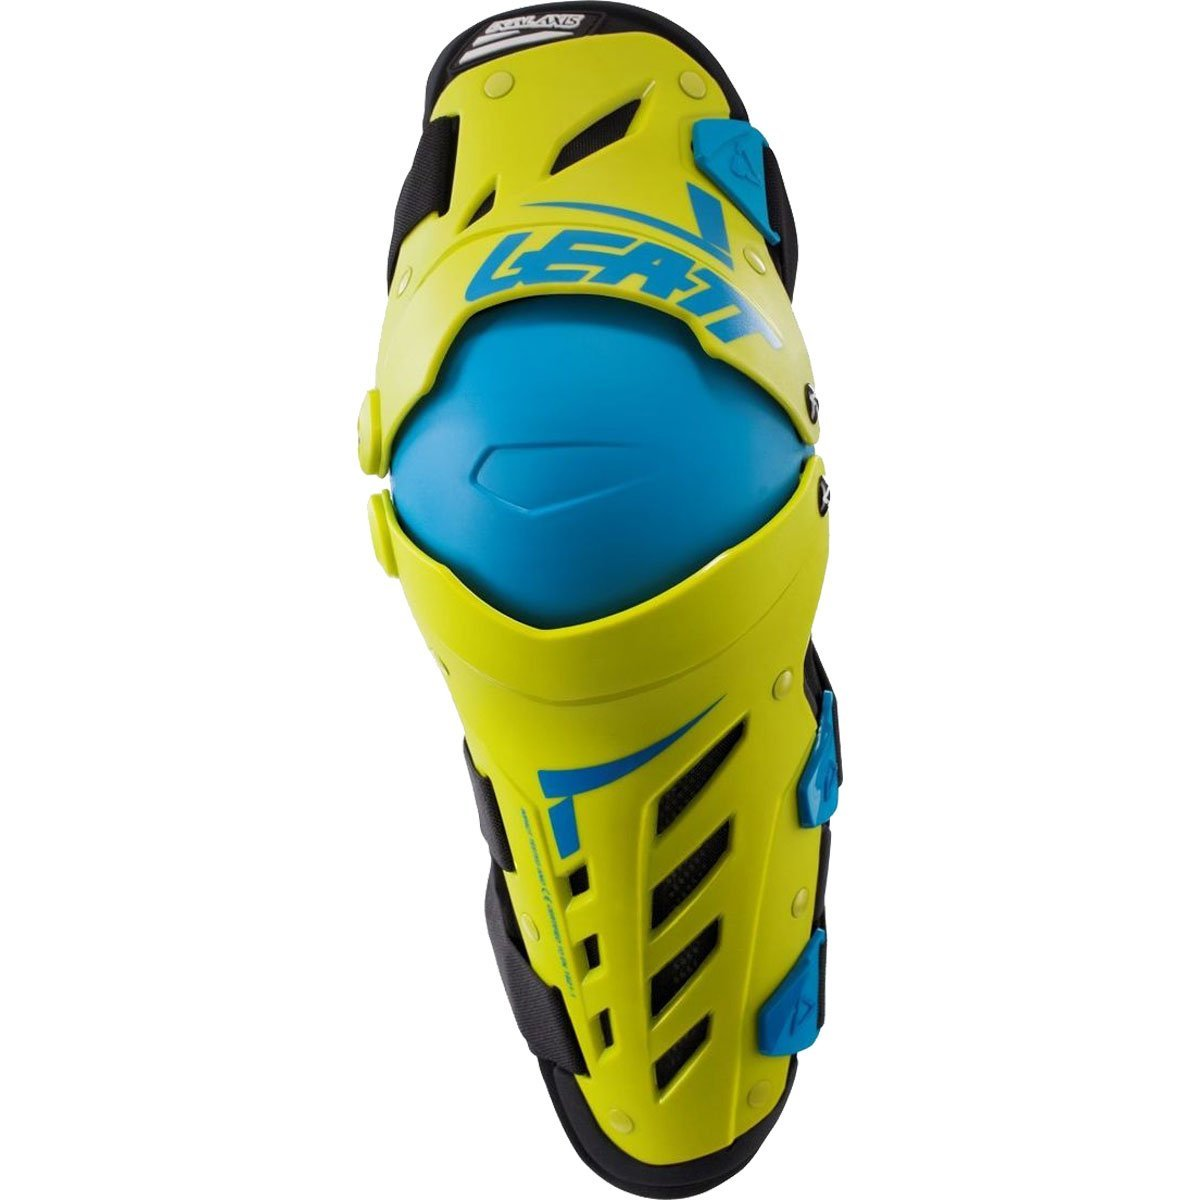 Leatt Lime Large/X-Large Knee & Shin Guard Dual Axis, Left and Right by Leatt Brace (Image #1)